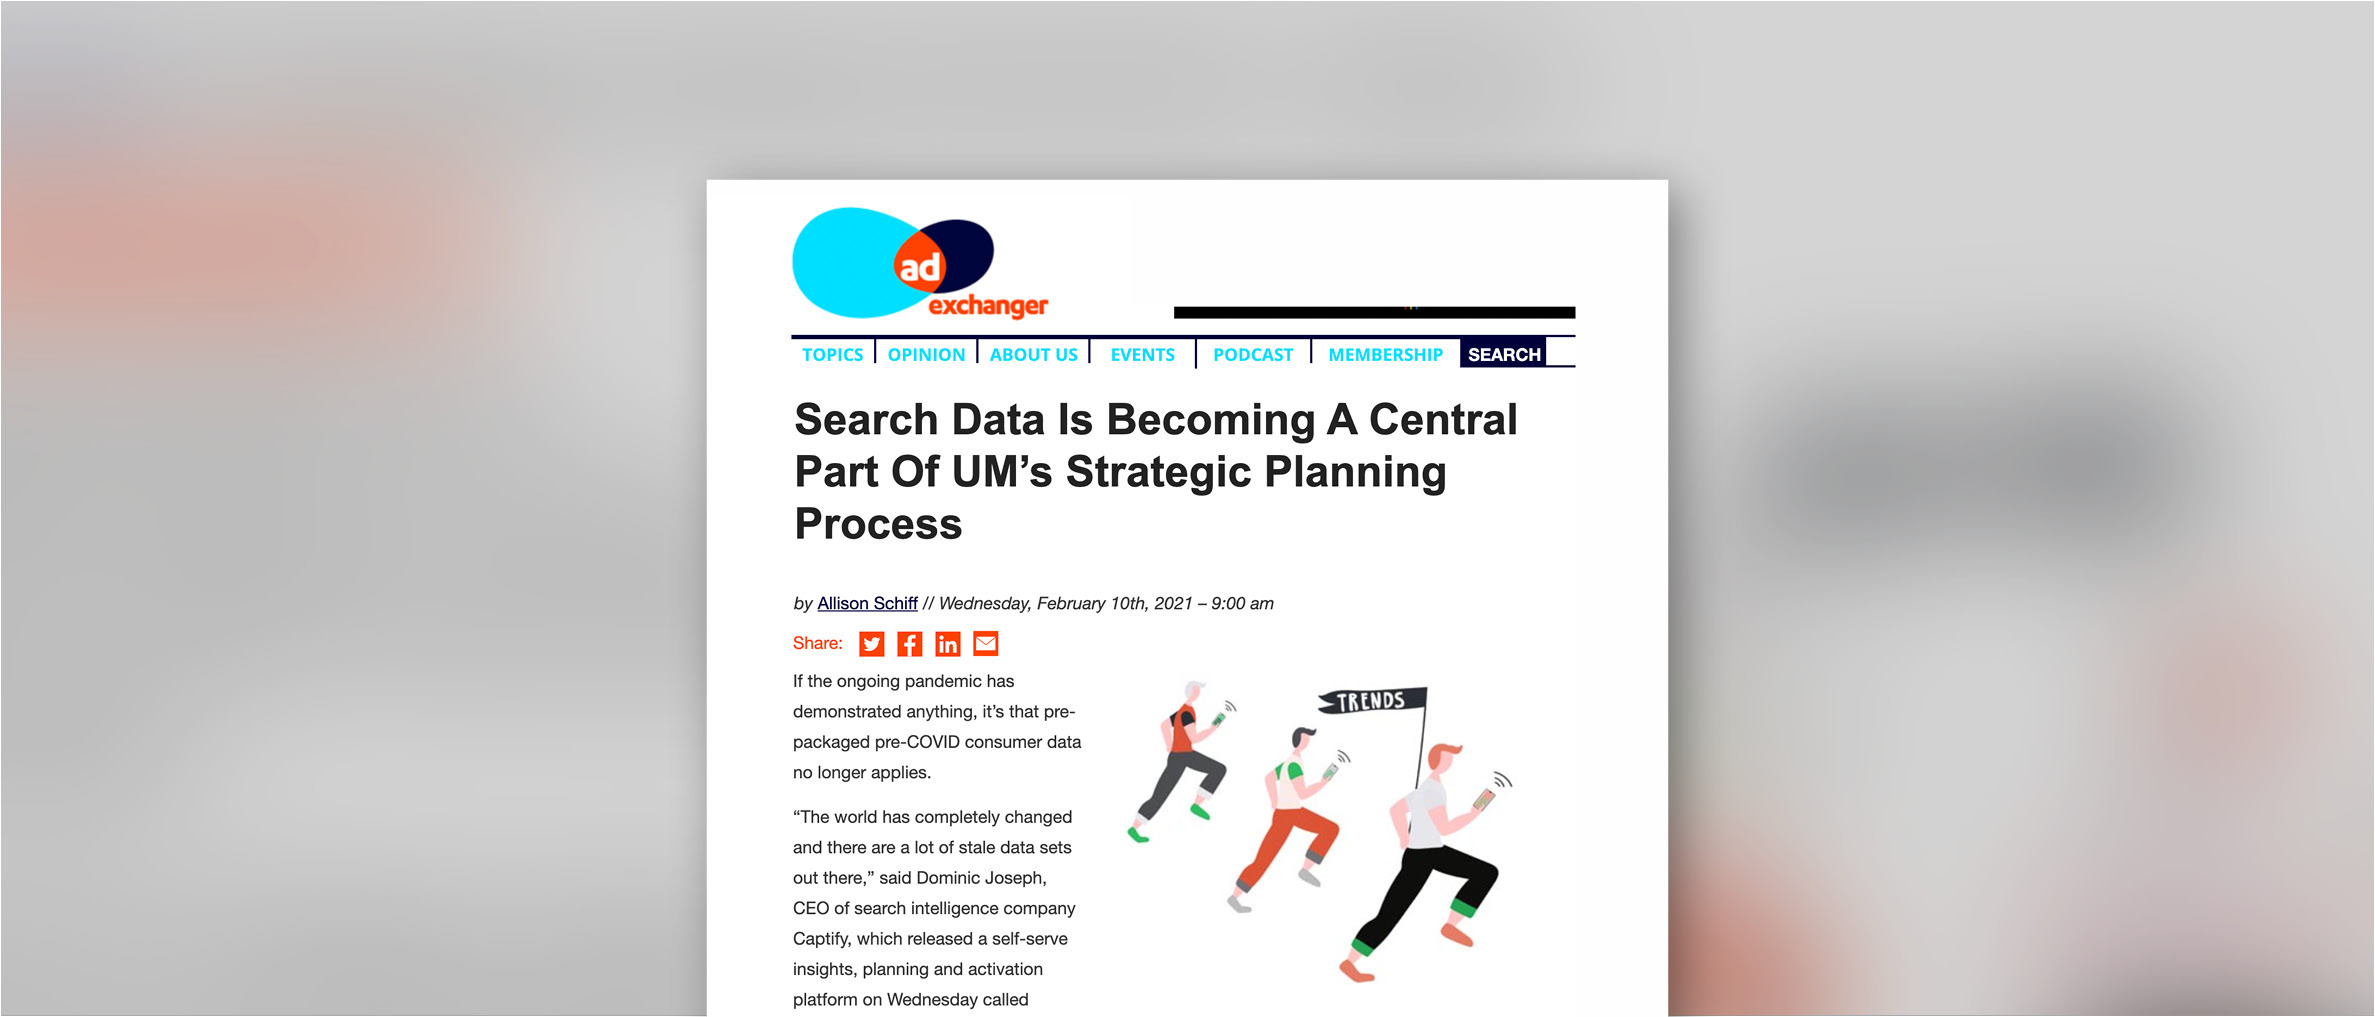 AdExchanger: Search Data Is Becoming A Central Part Of UM's Strategic Planning Process